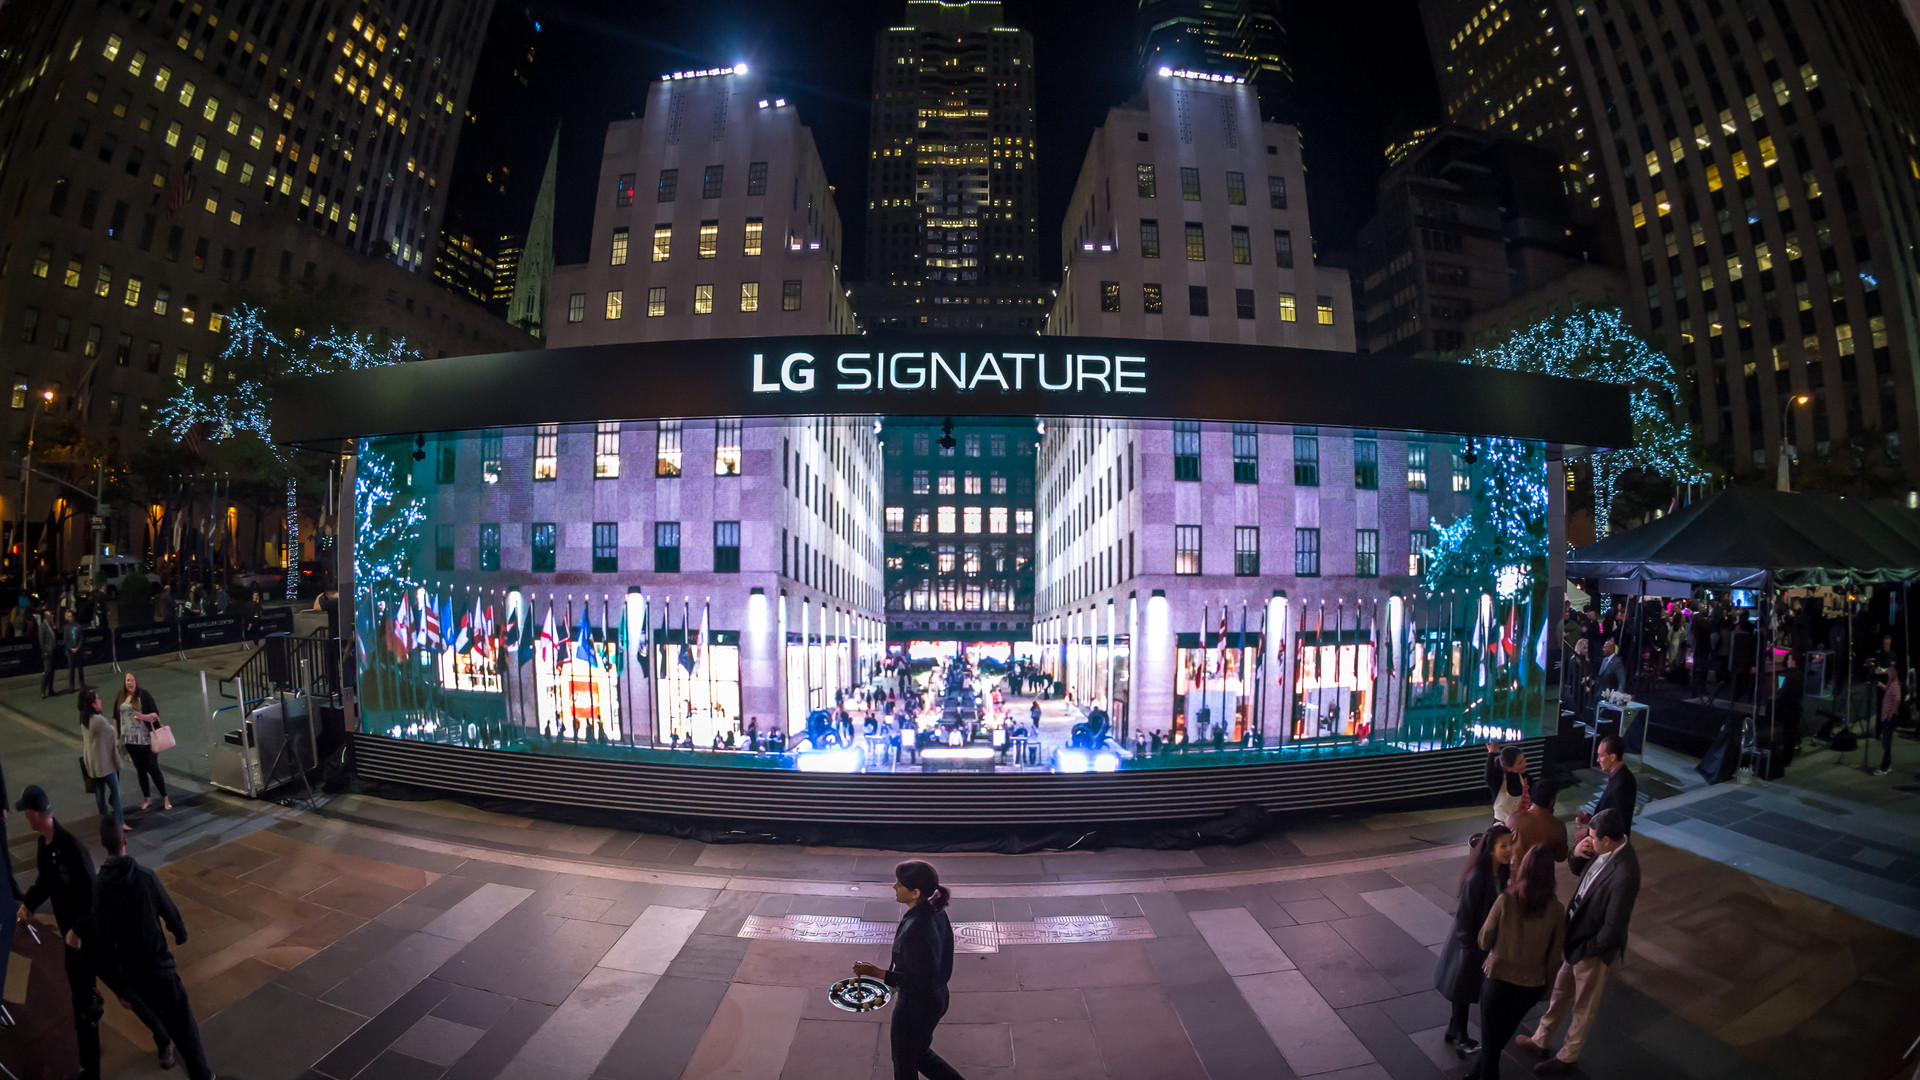 lg signature 'transparent house'.